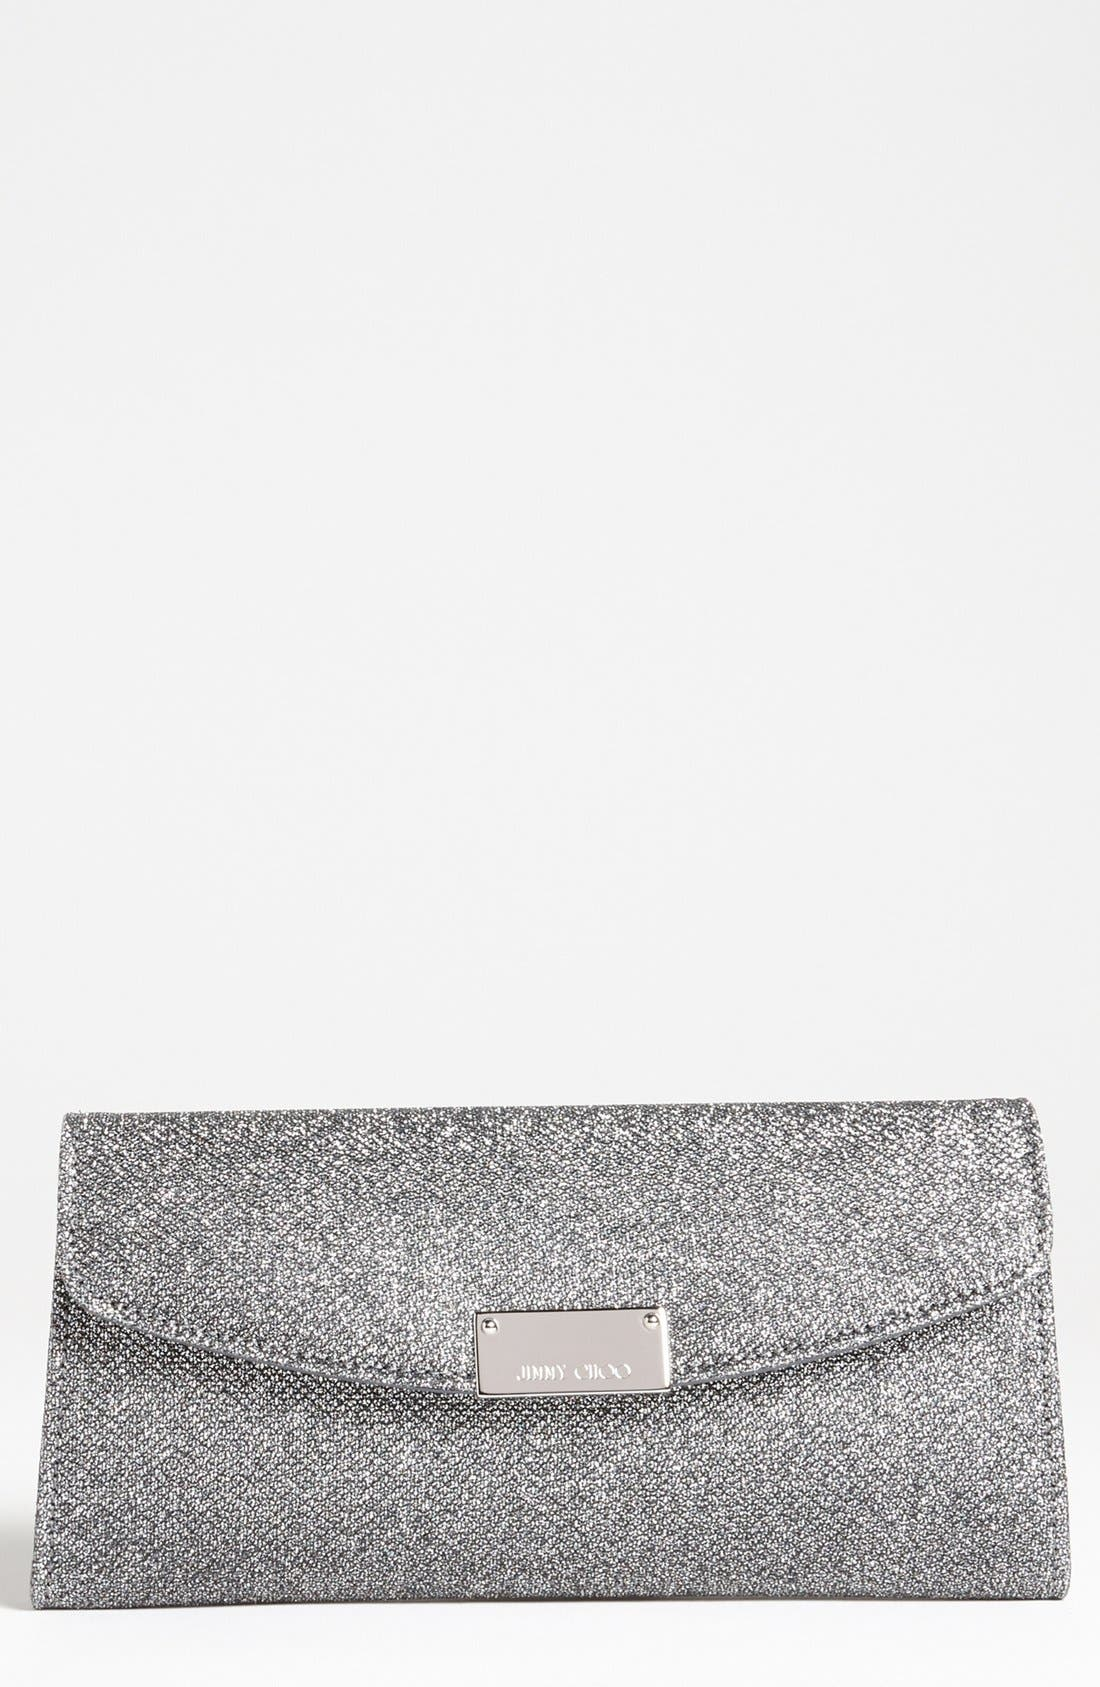 Alternate Image 1 Selected - Jimmy Choo 'Riane' Glitter Lamé Clutch